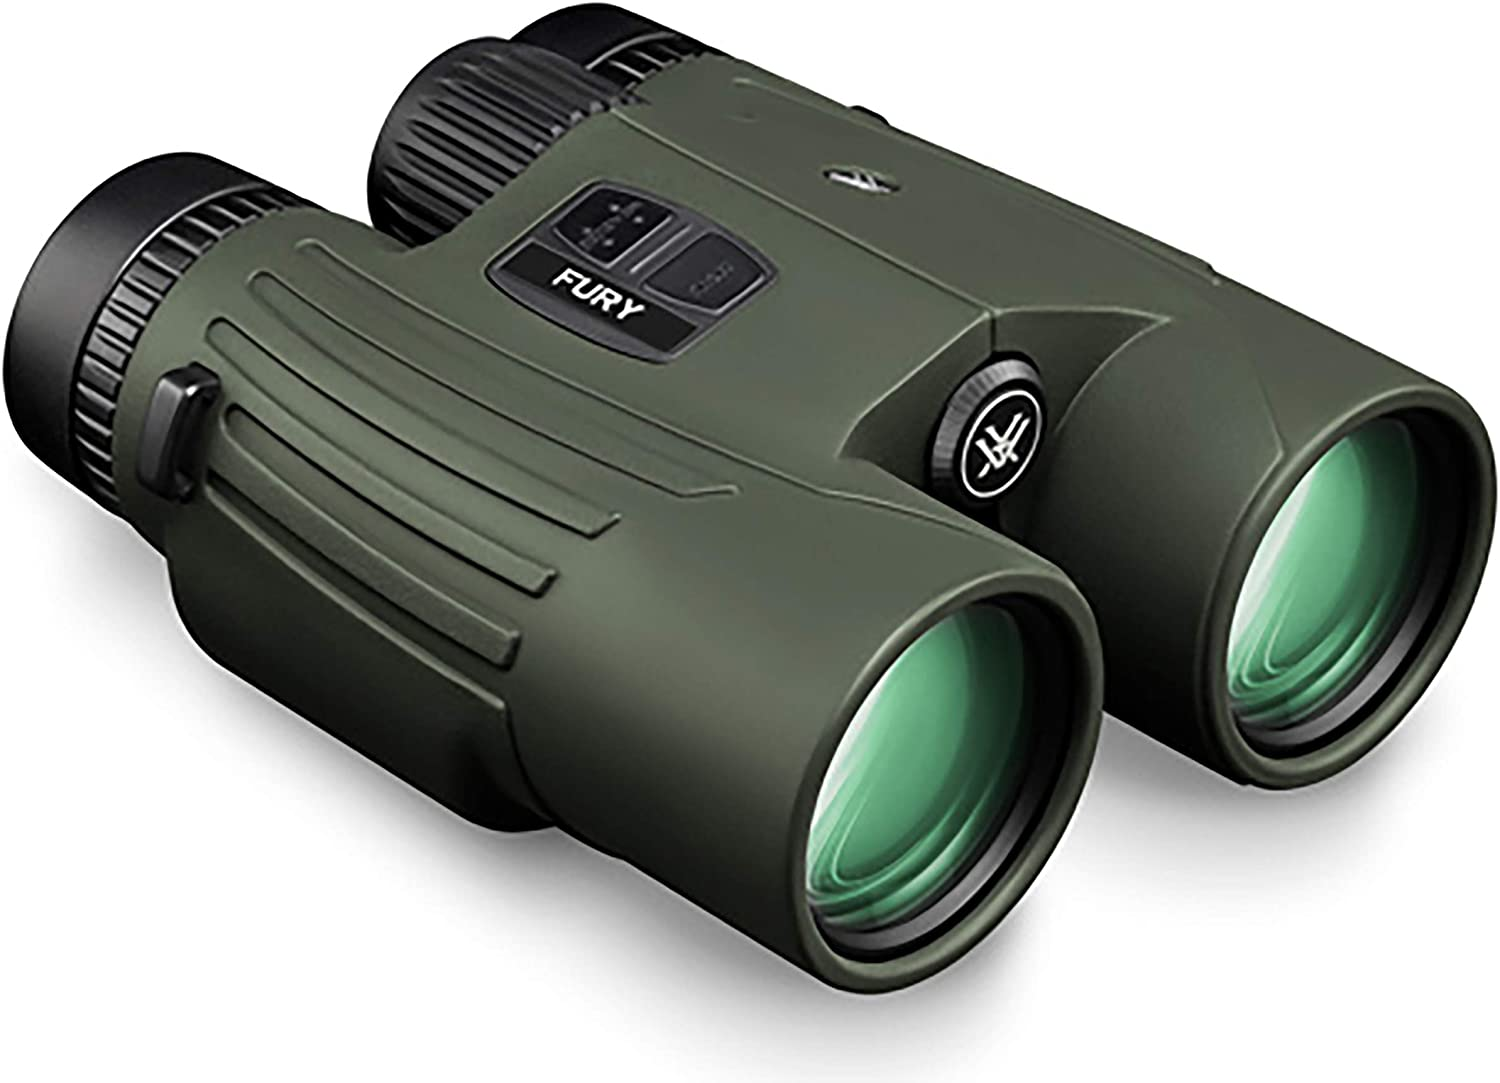 Best rangefinder binoculars: Vortex Optics Fury 10X42mm